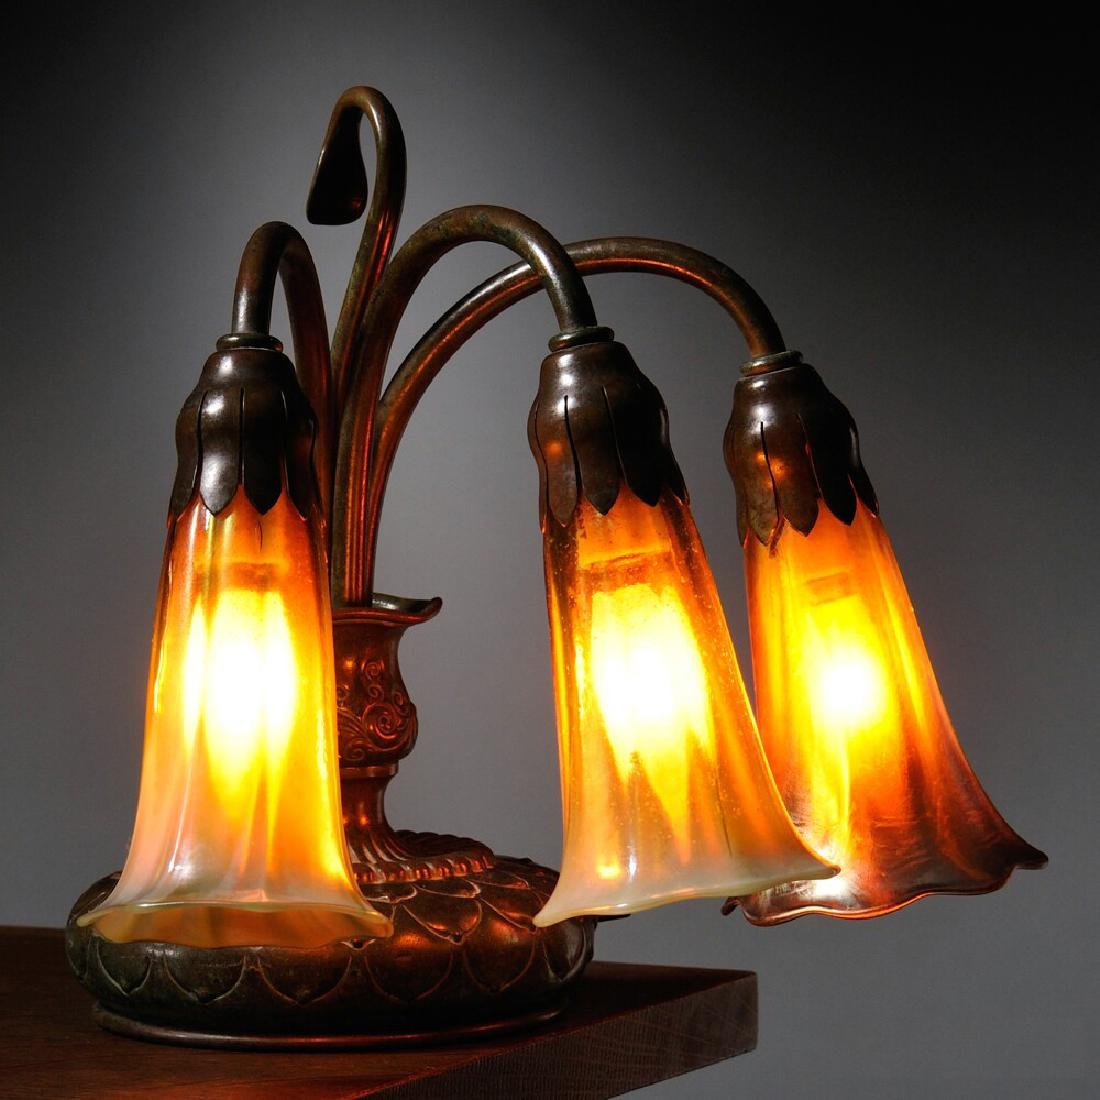 Tiffany Studios Three- Favrile light Piano Lamp - 2